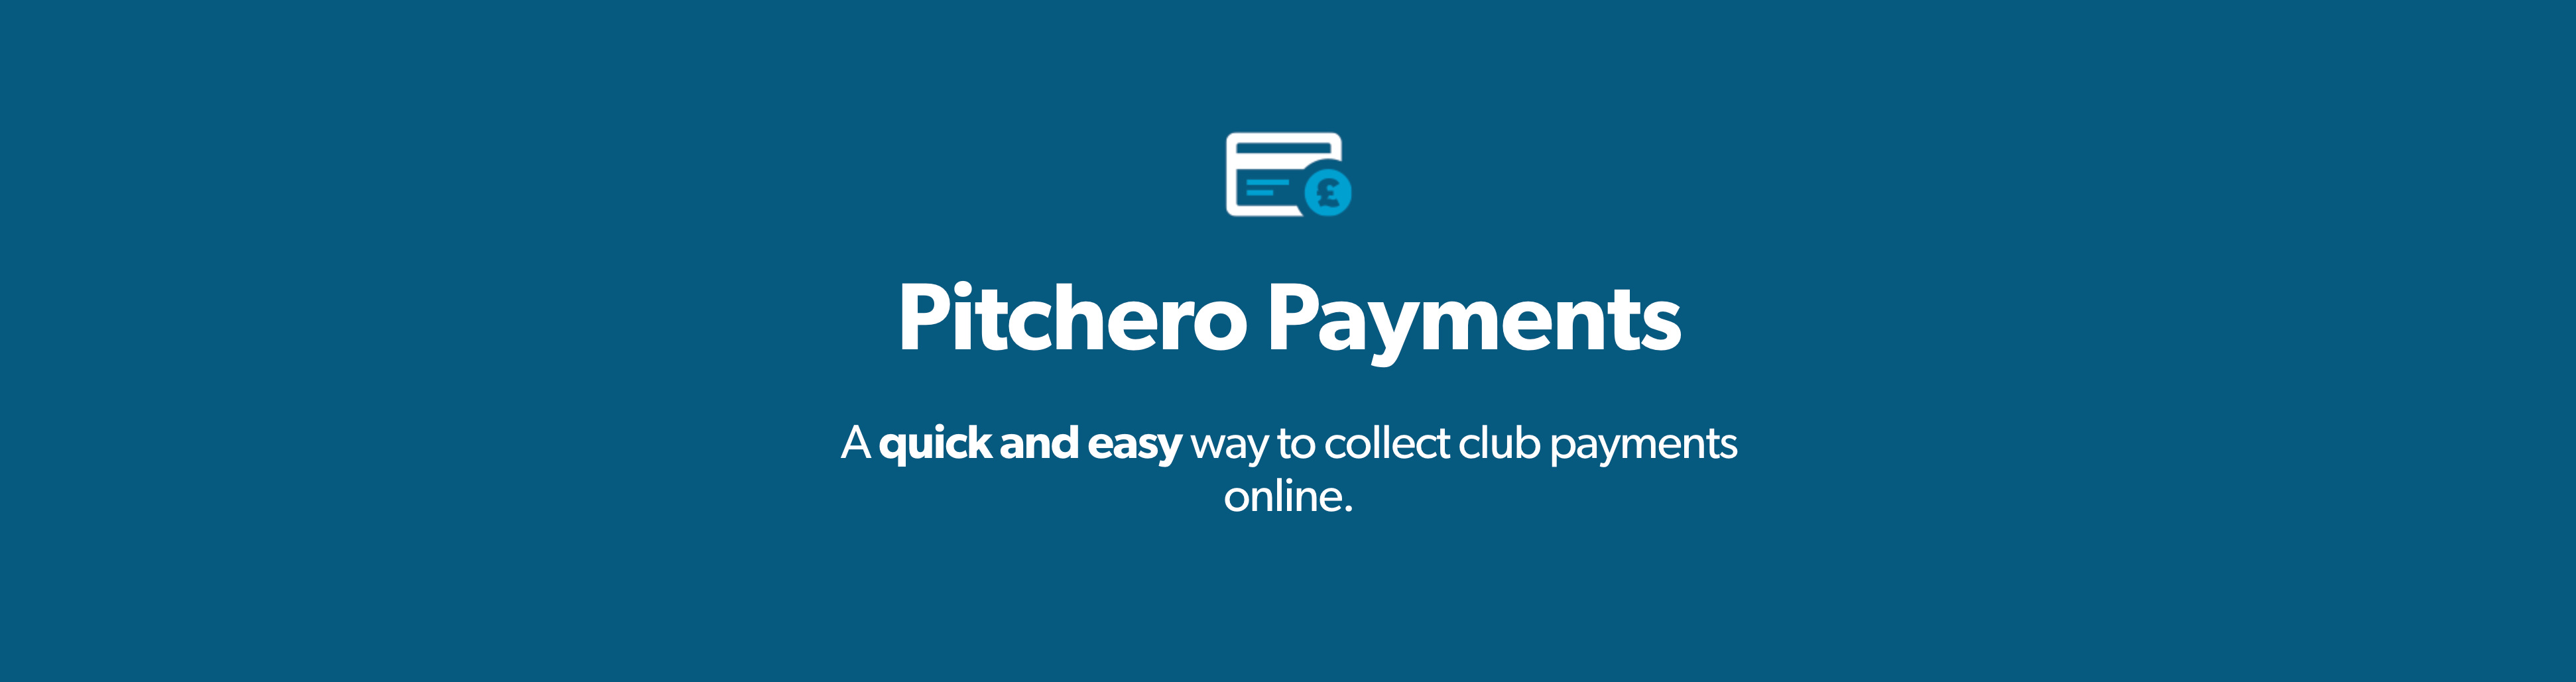 pitchero-payments